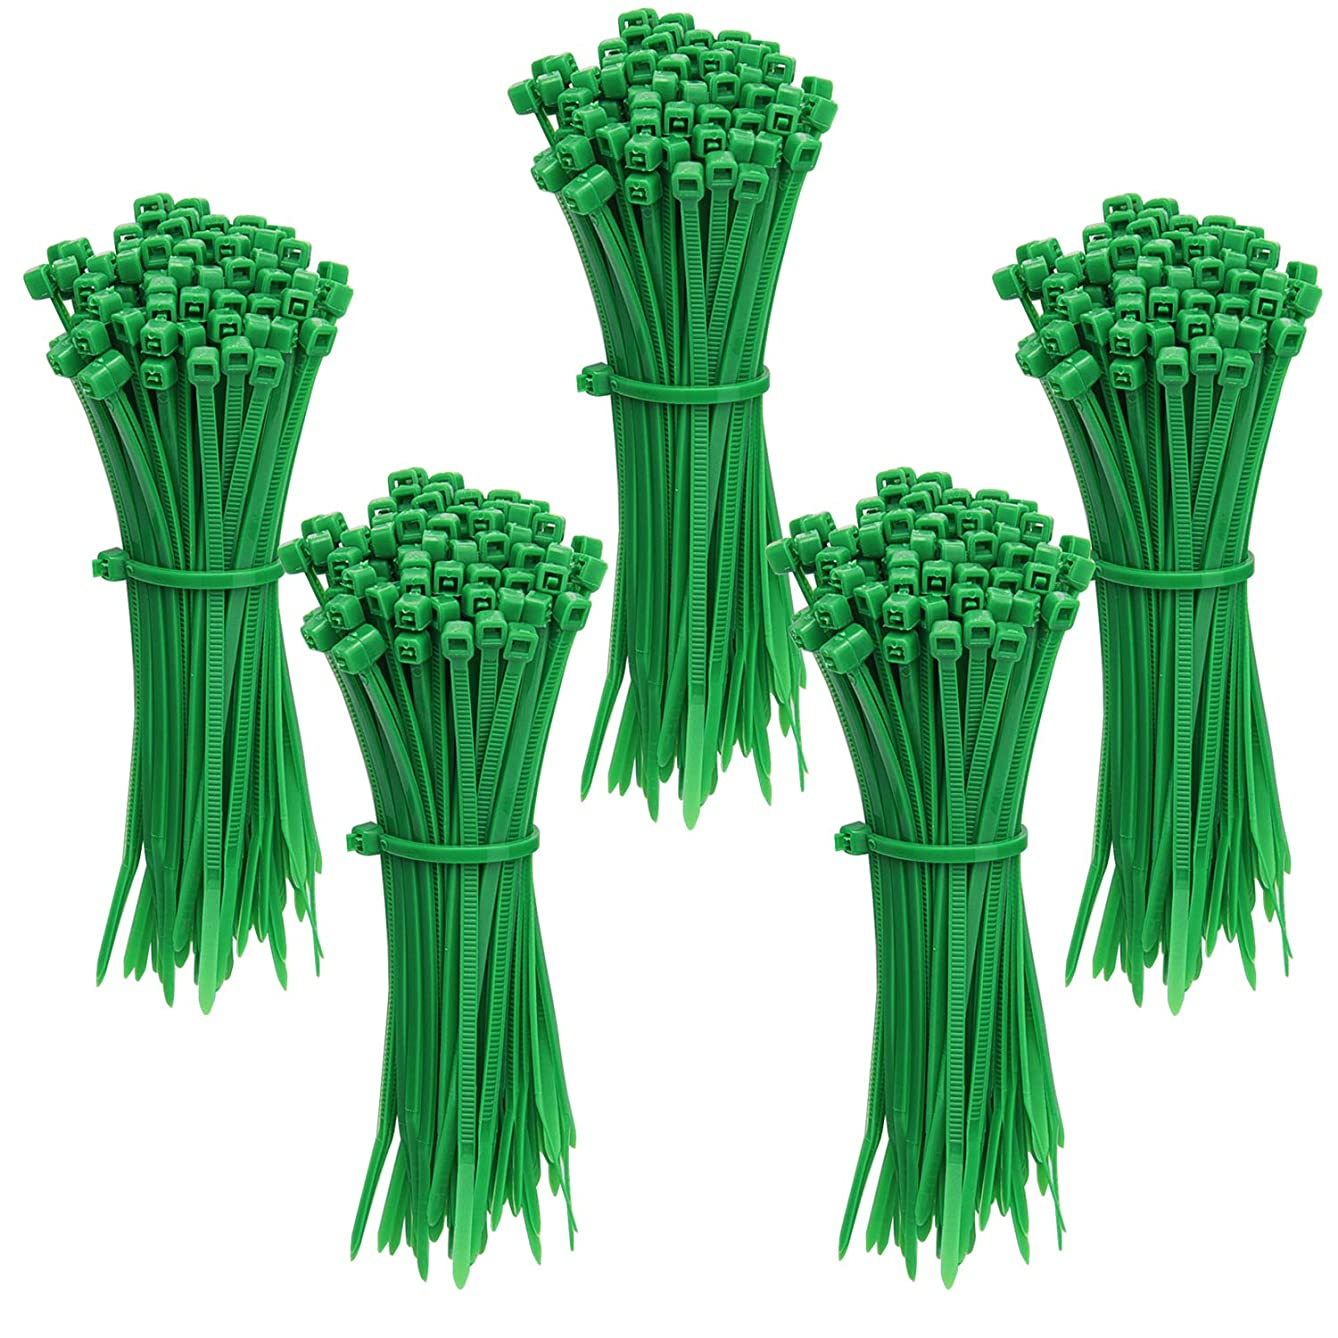 Livder 500 Pieces Green Heavy Self-Locking Nylon Zip Cable Ties, 4 Inch